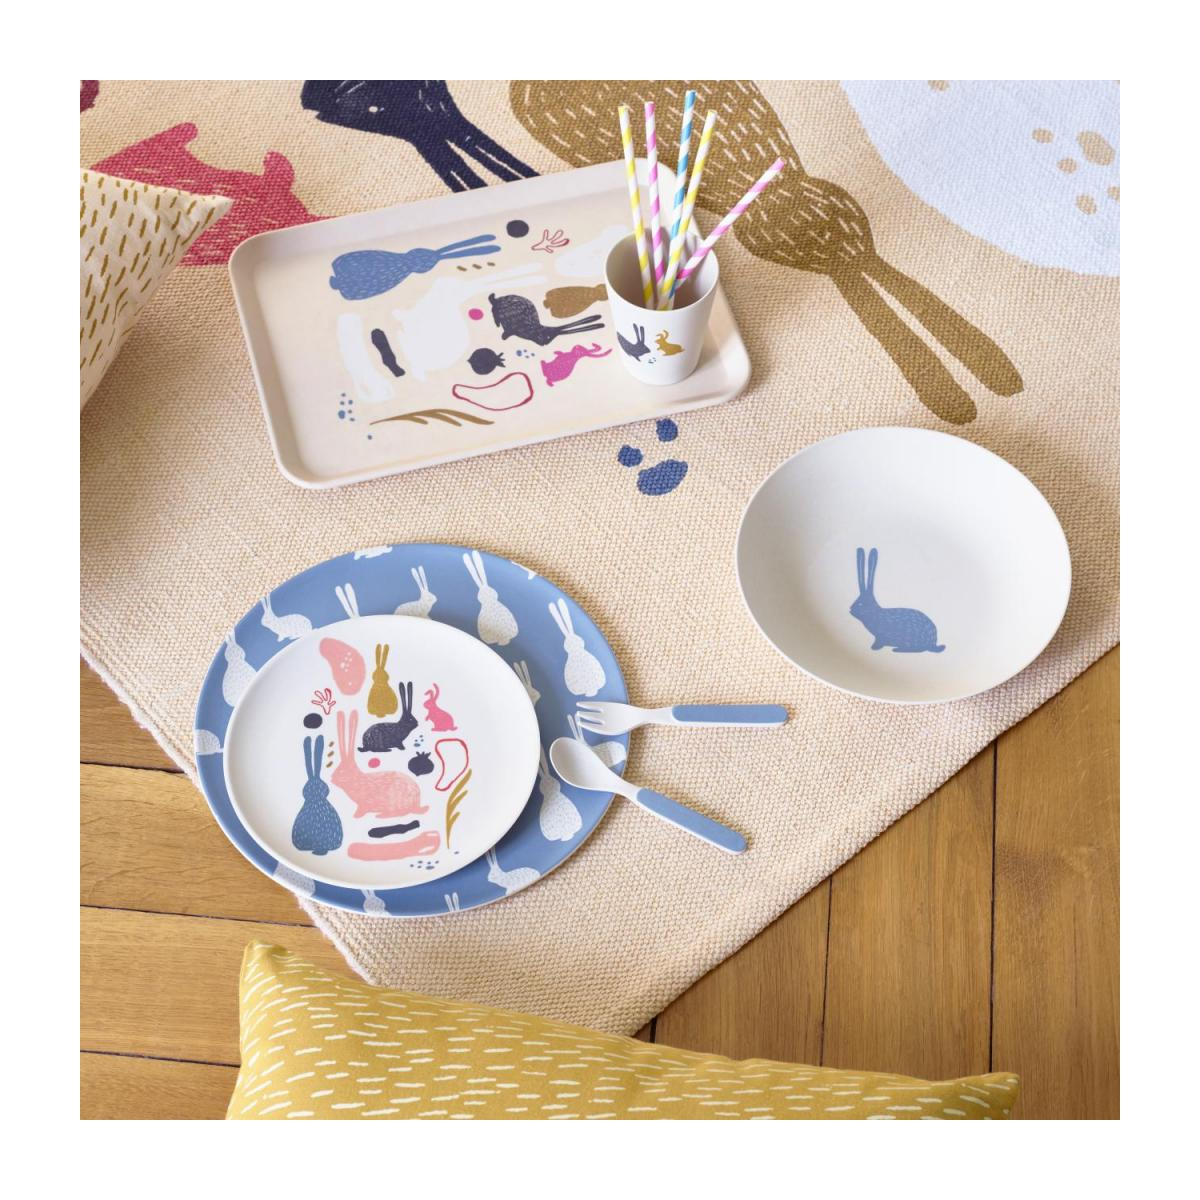 Soup plate with bunny patterns n°5